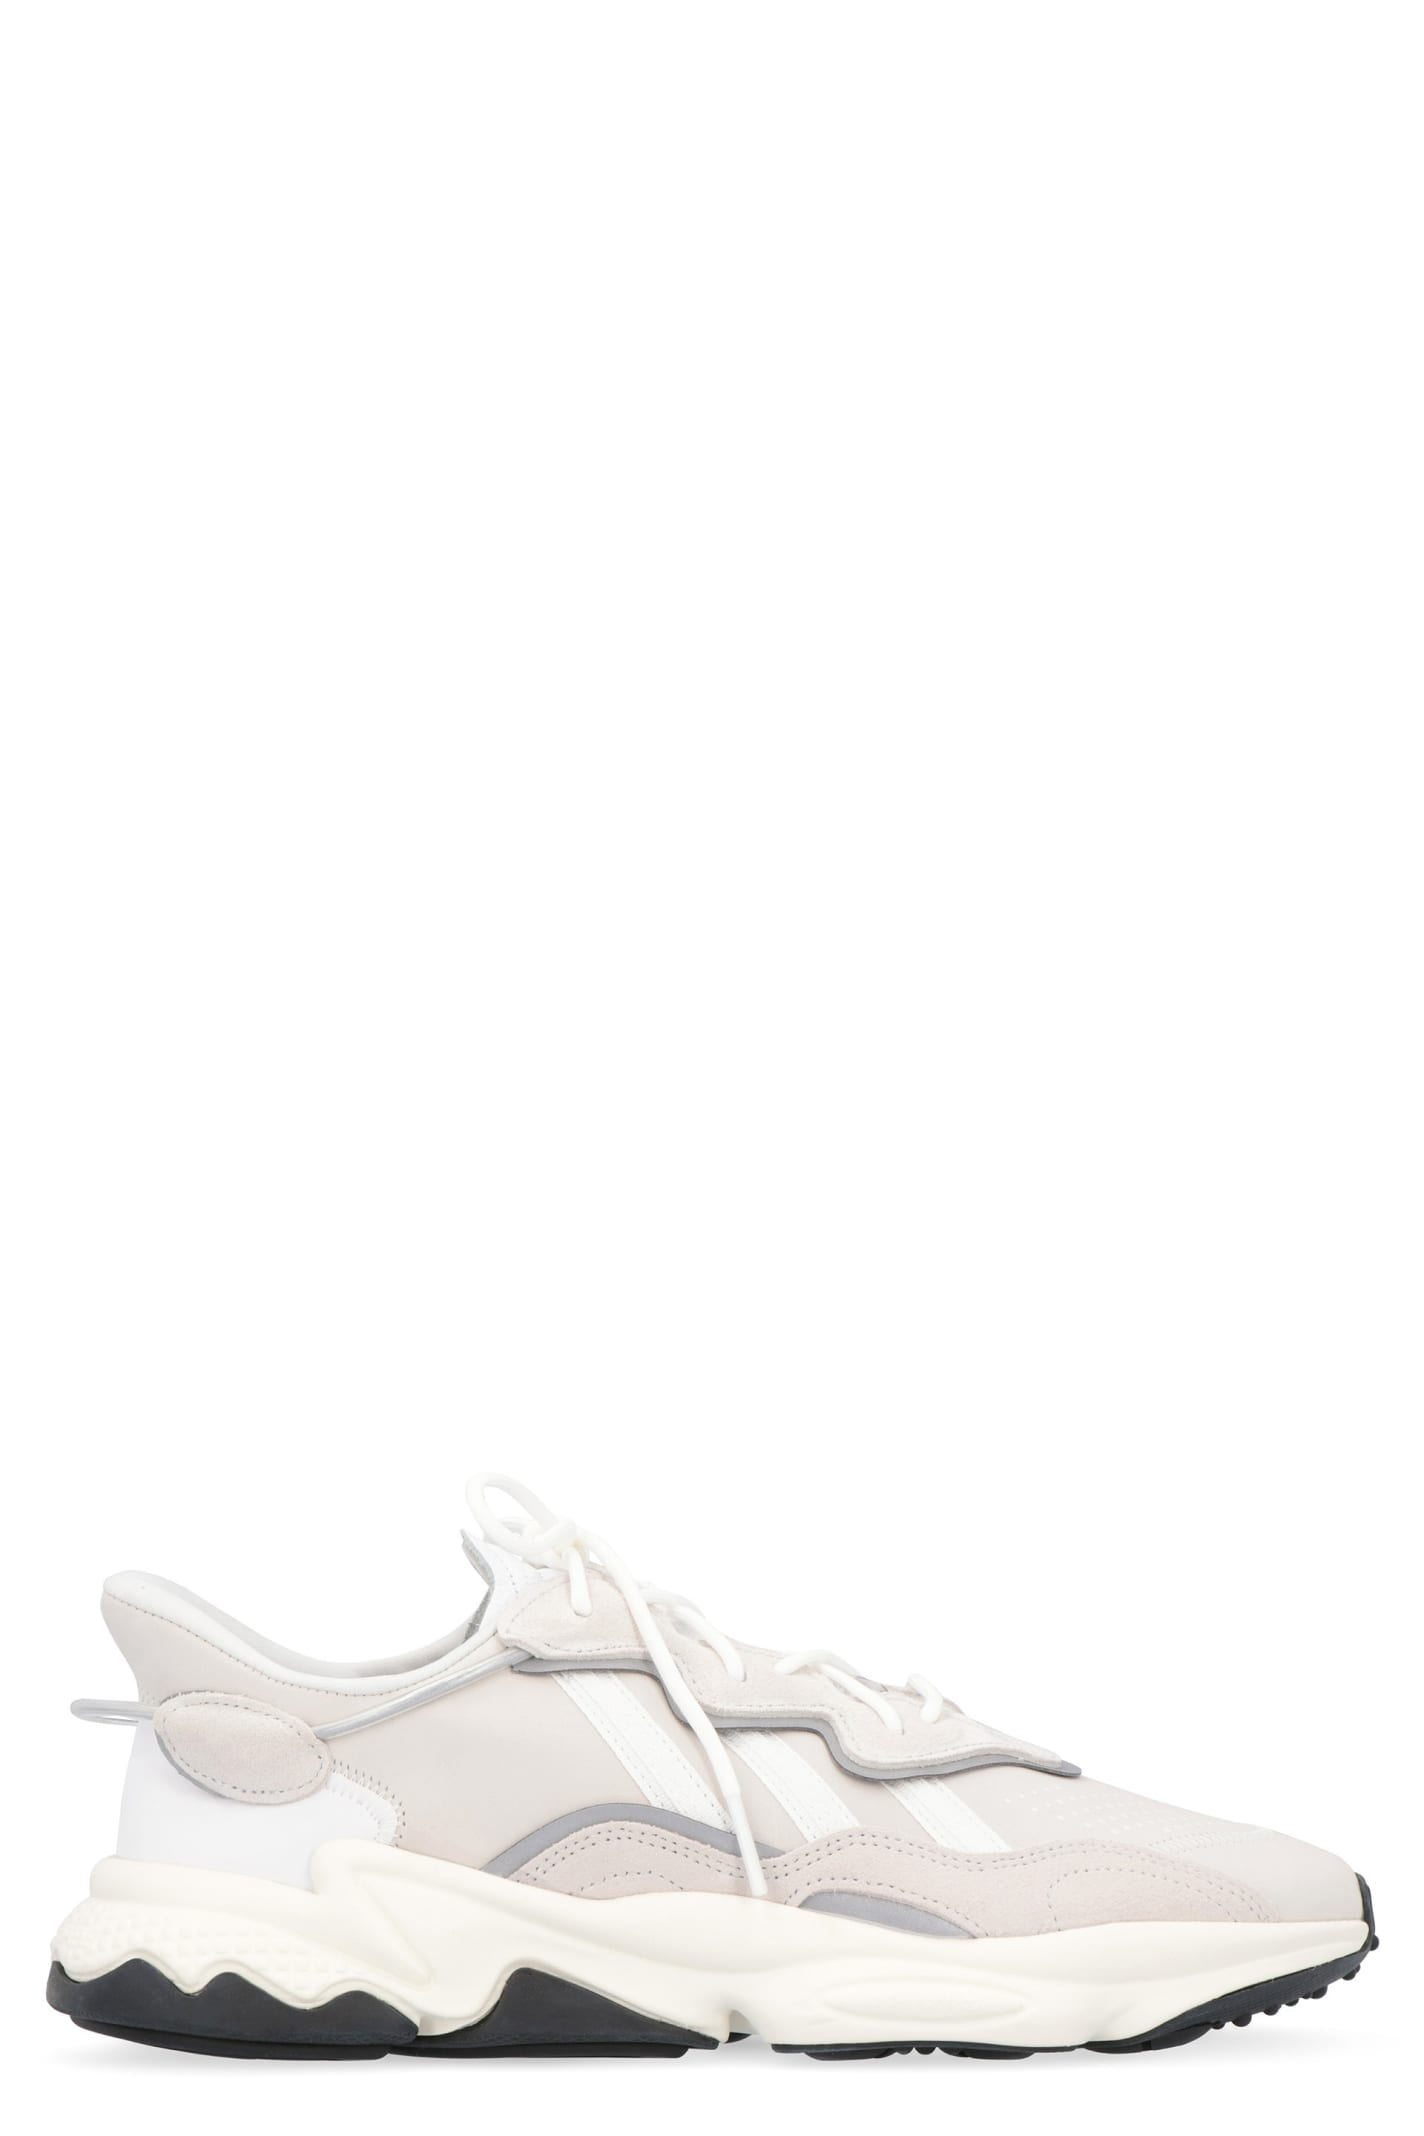 Ozweego Leather And Fabric Low-top Sneakers In Beige